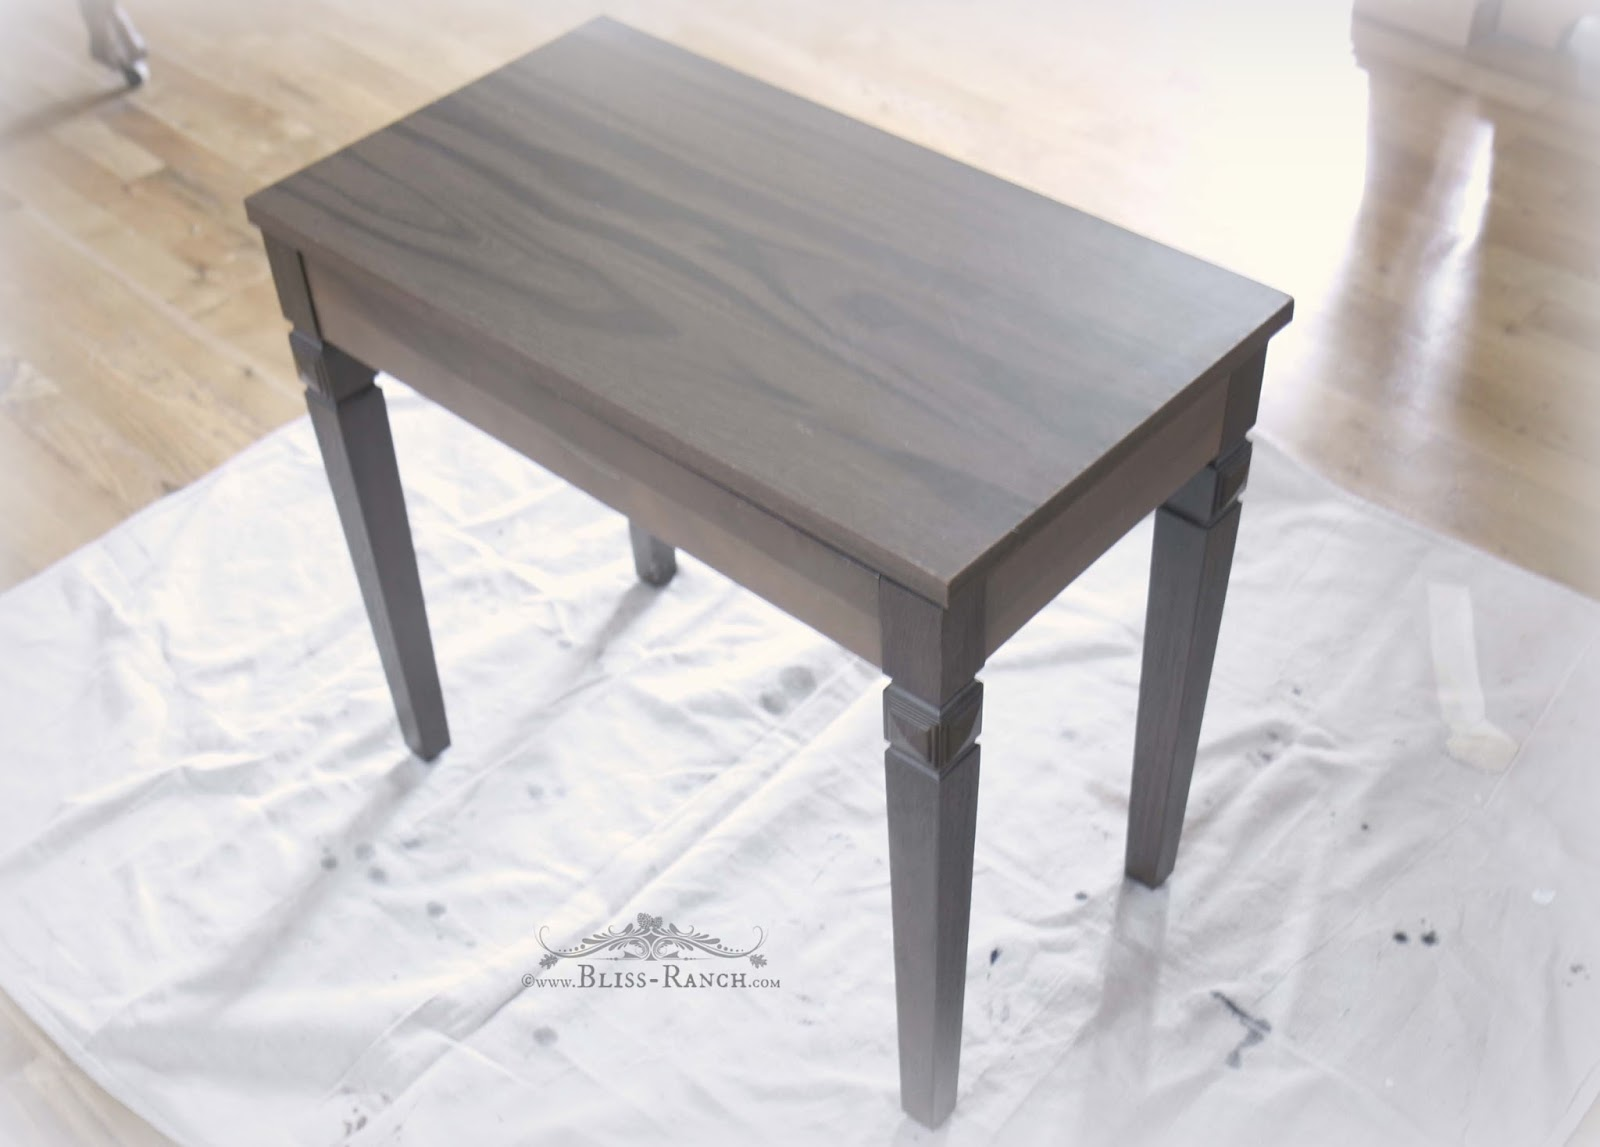 Painted and lettered Piano Bench redo Bliss-Ranch.com